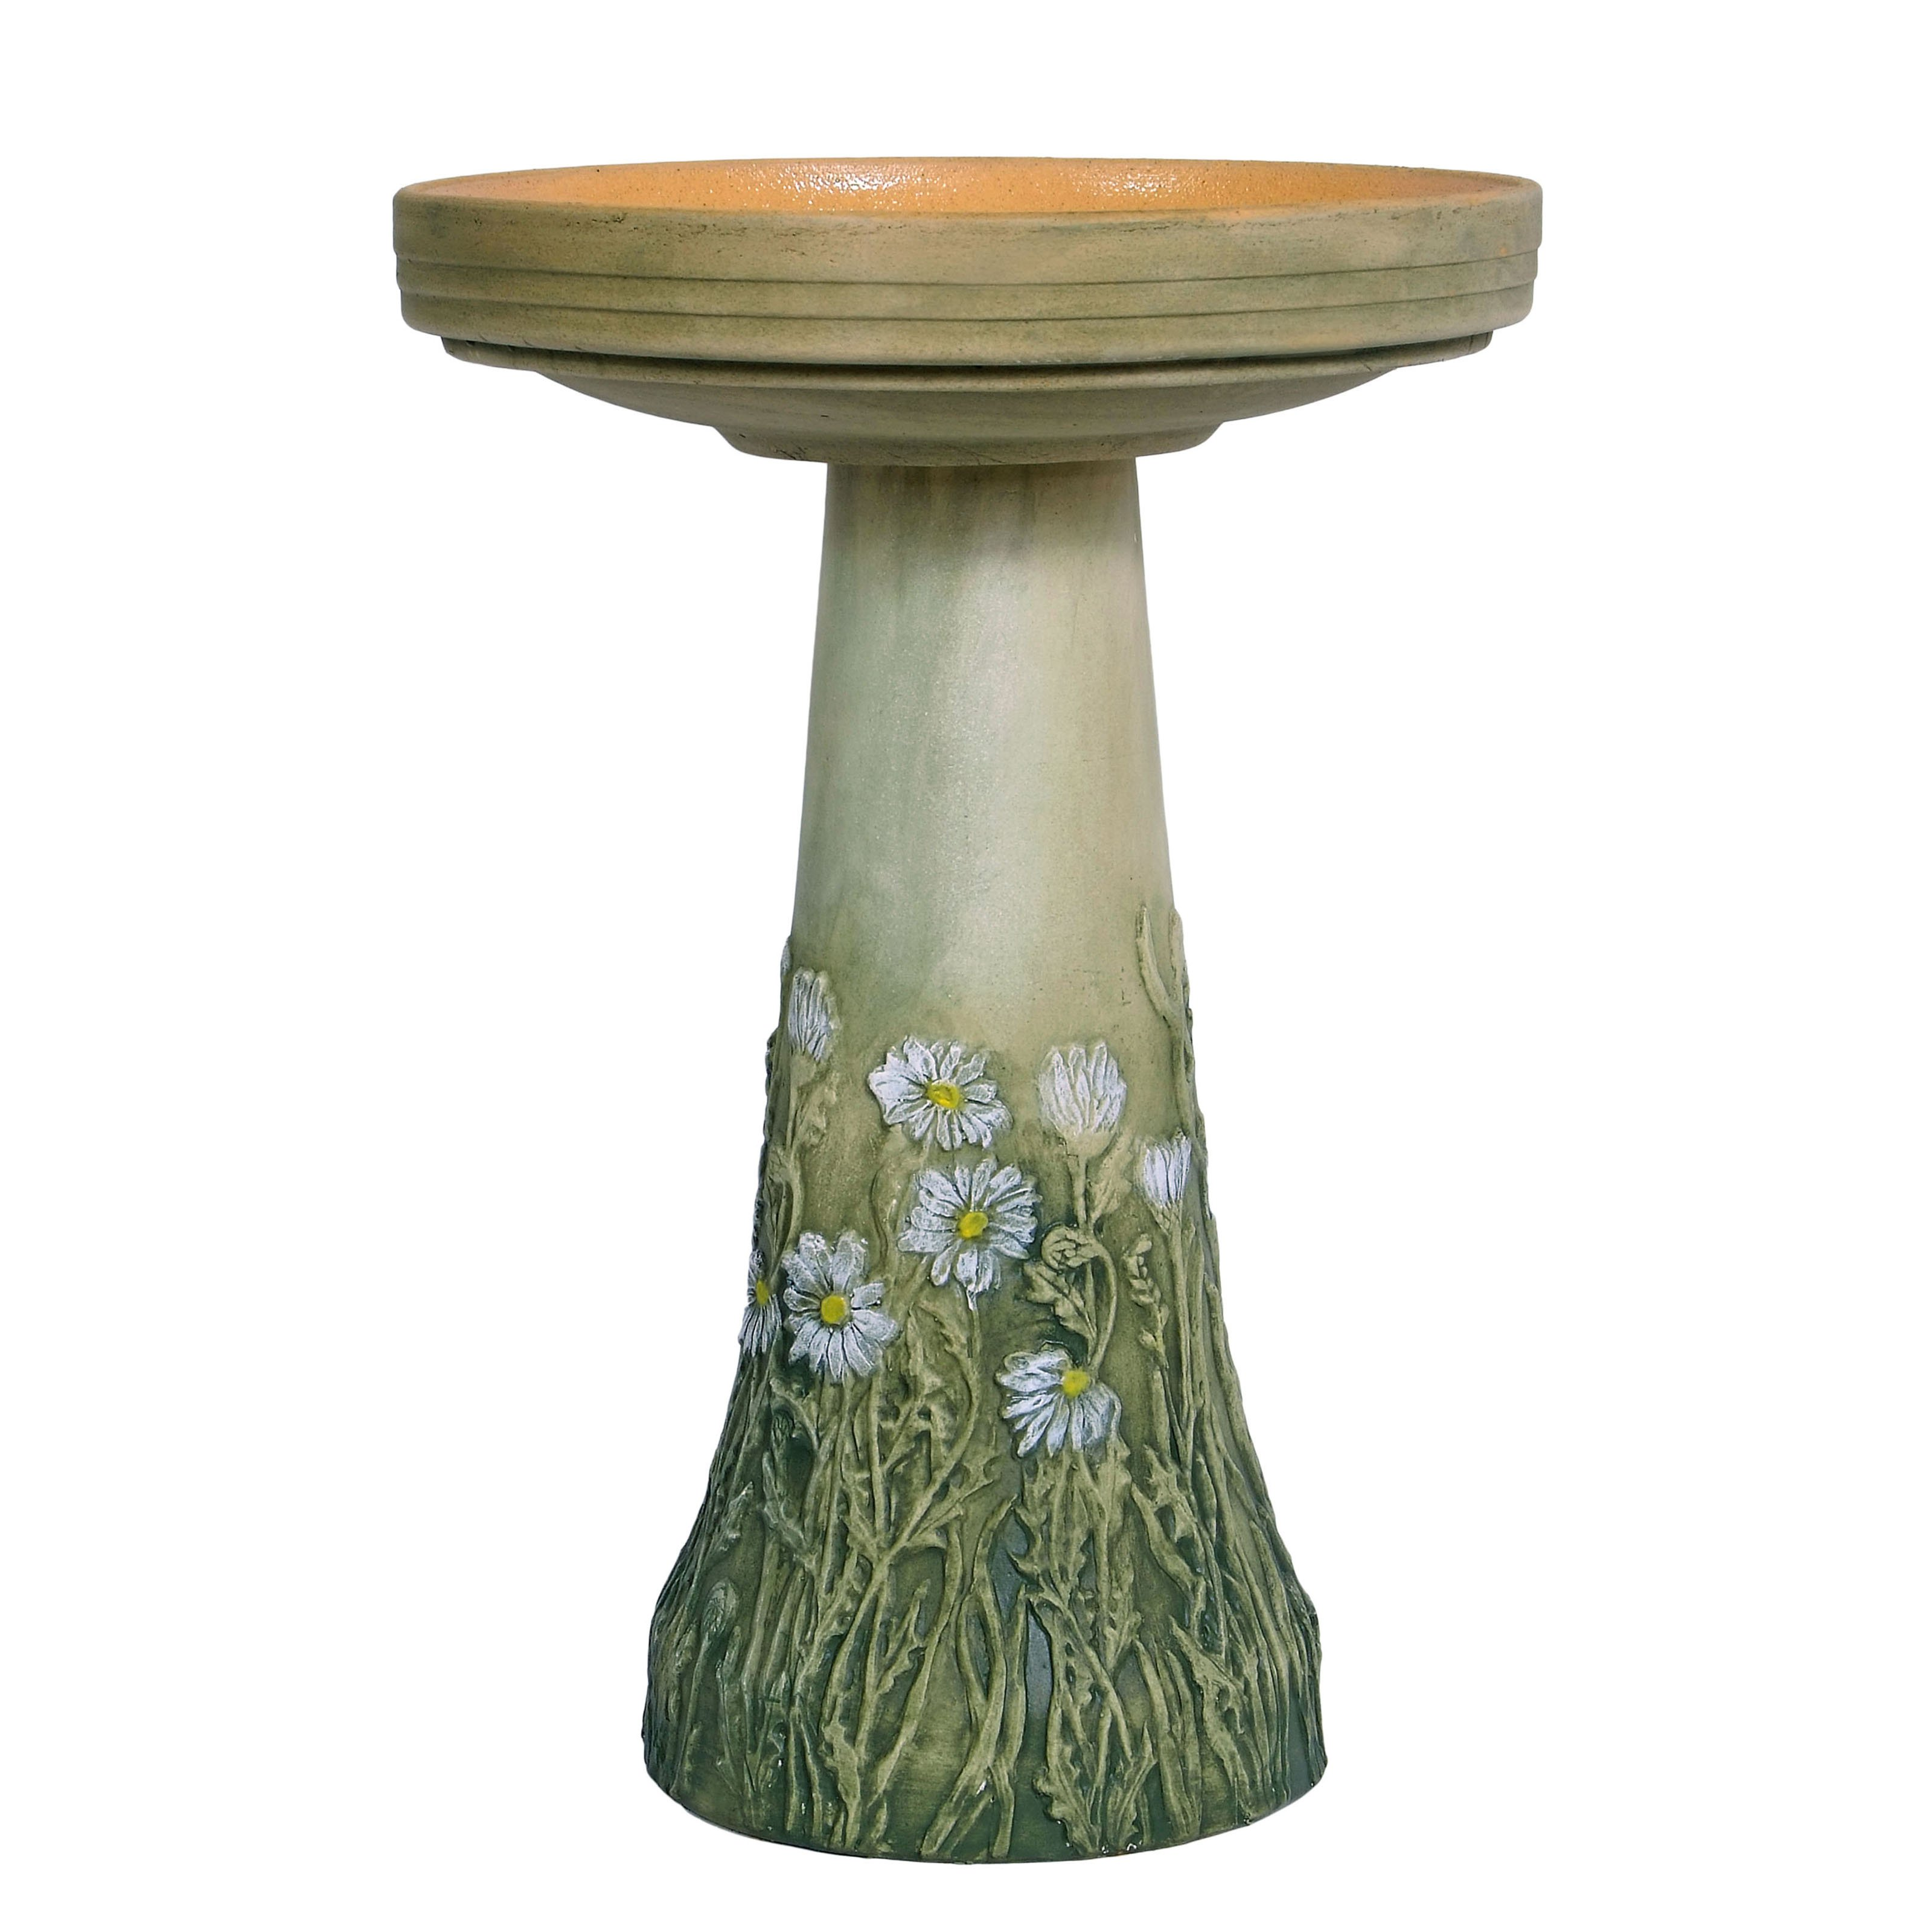 Birds Choice Burley Clay Birdbath Daisy by Birds Choice